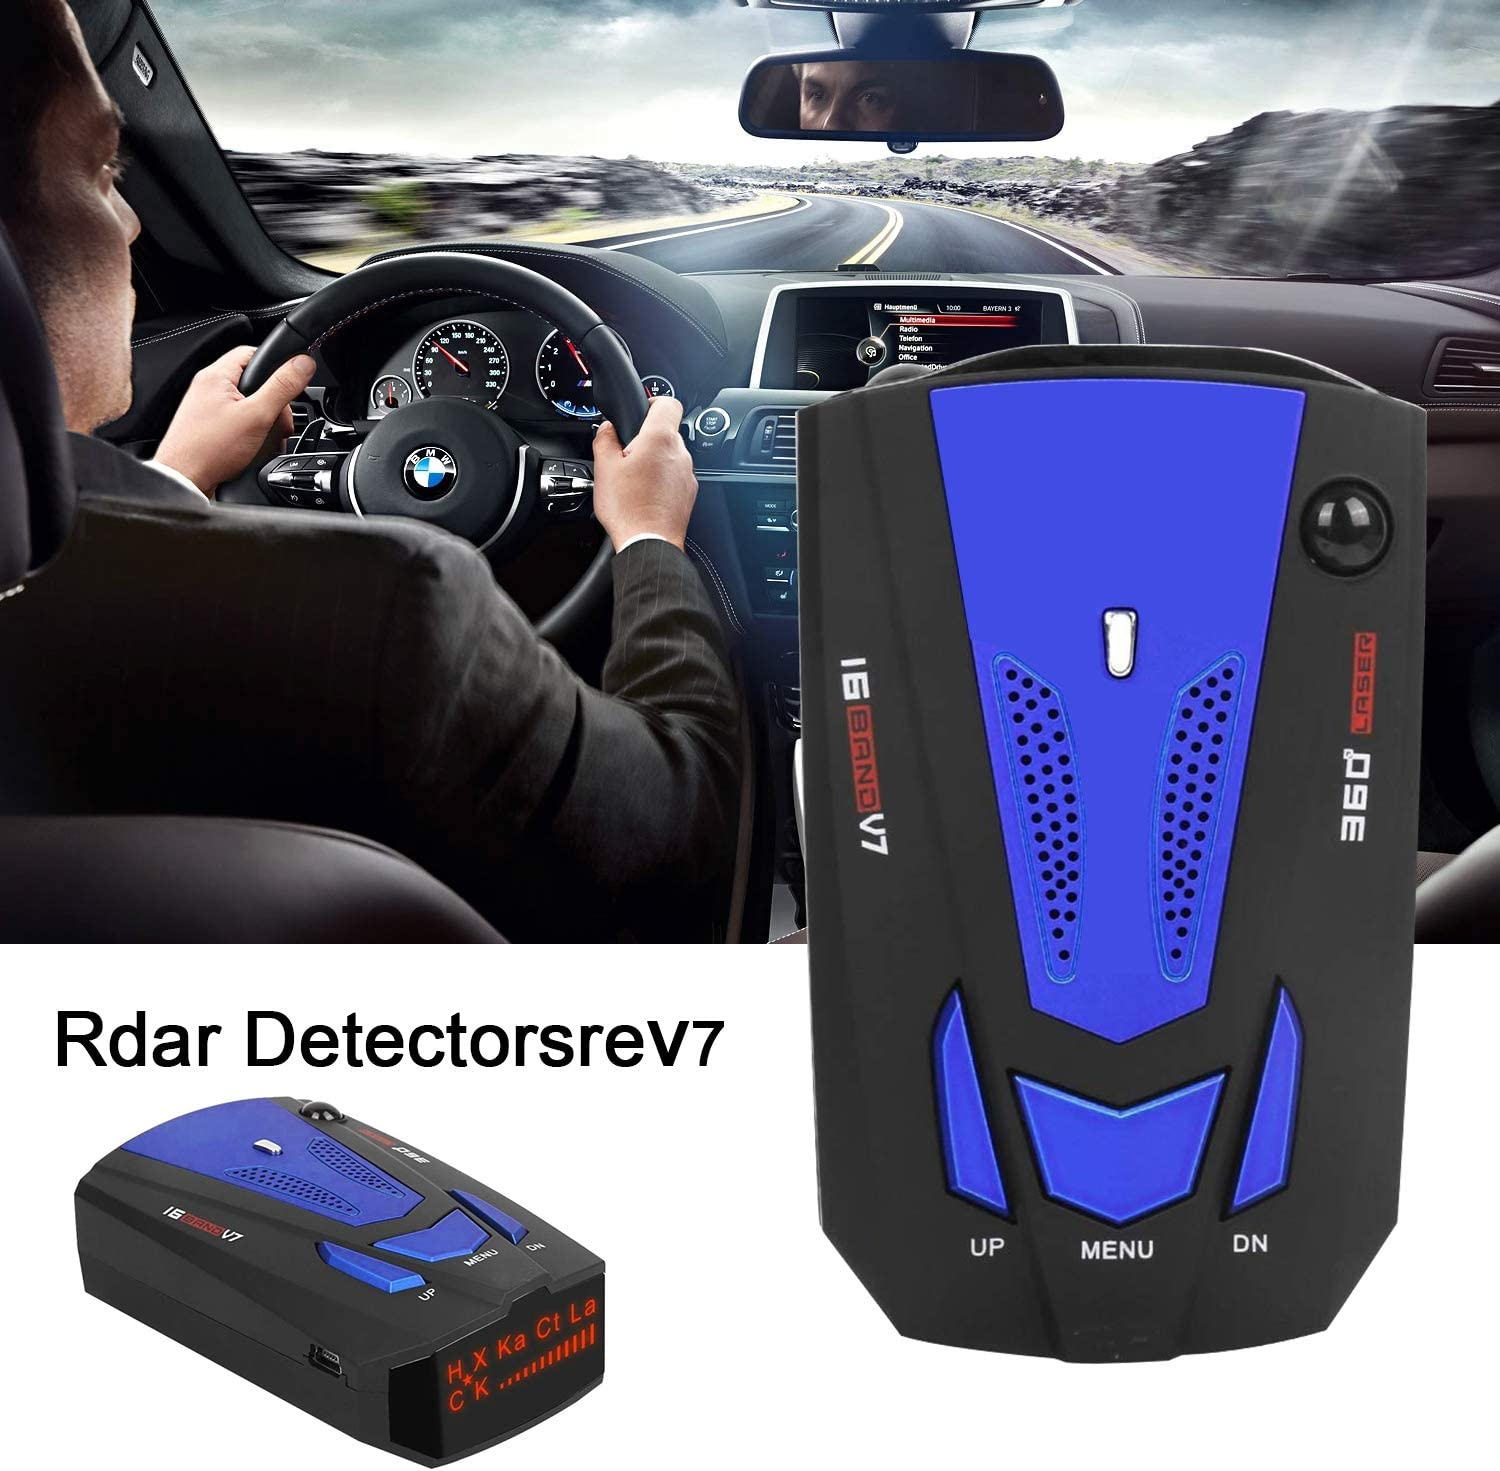 Radar detectors for Cars, Car Speed Testing System, 12V, Voice Reminder Blue